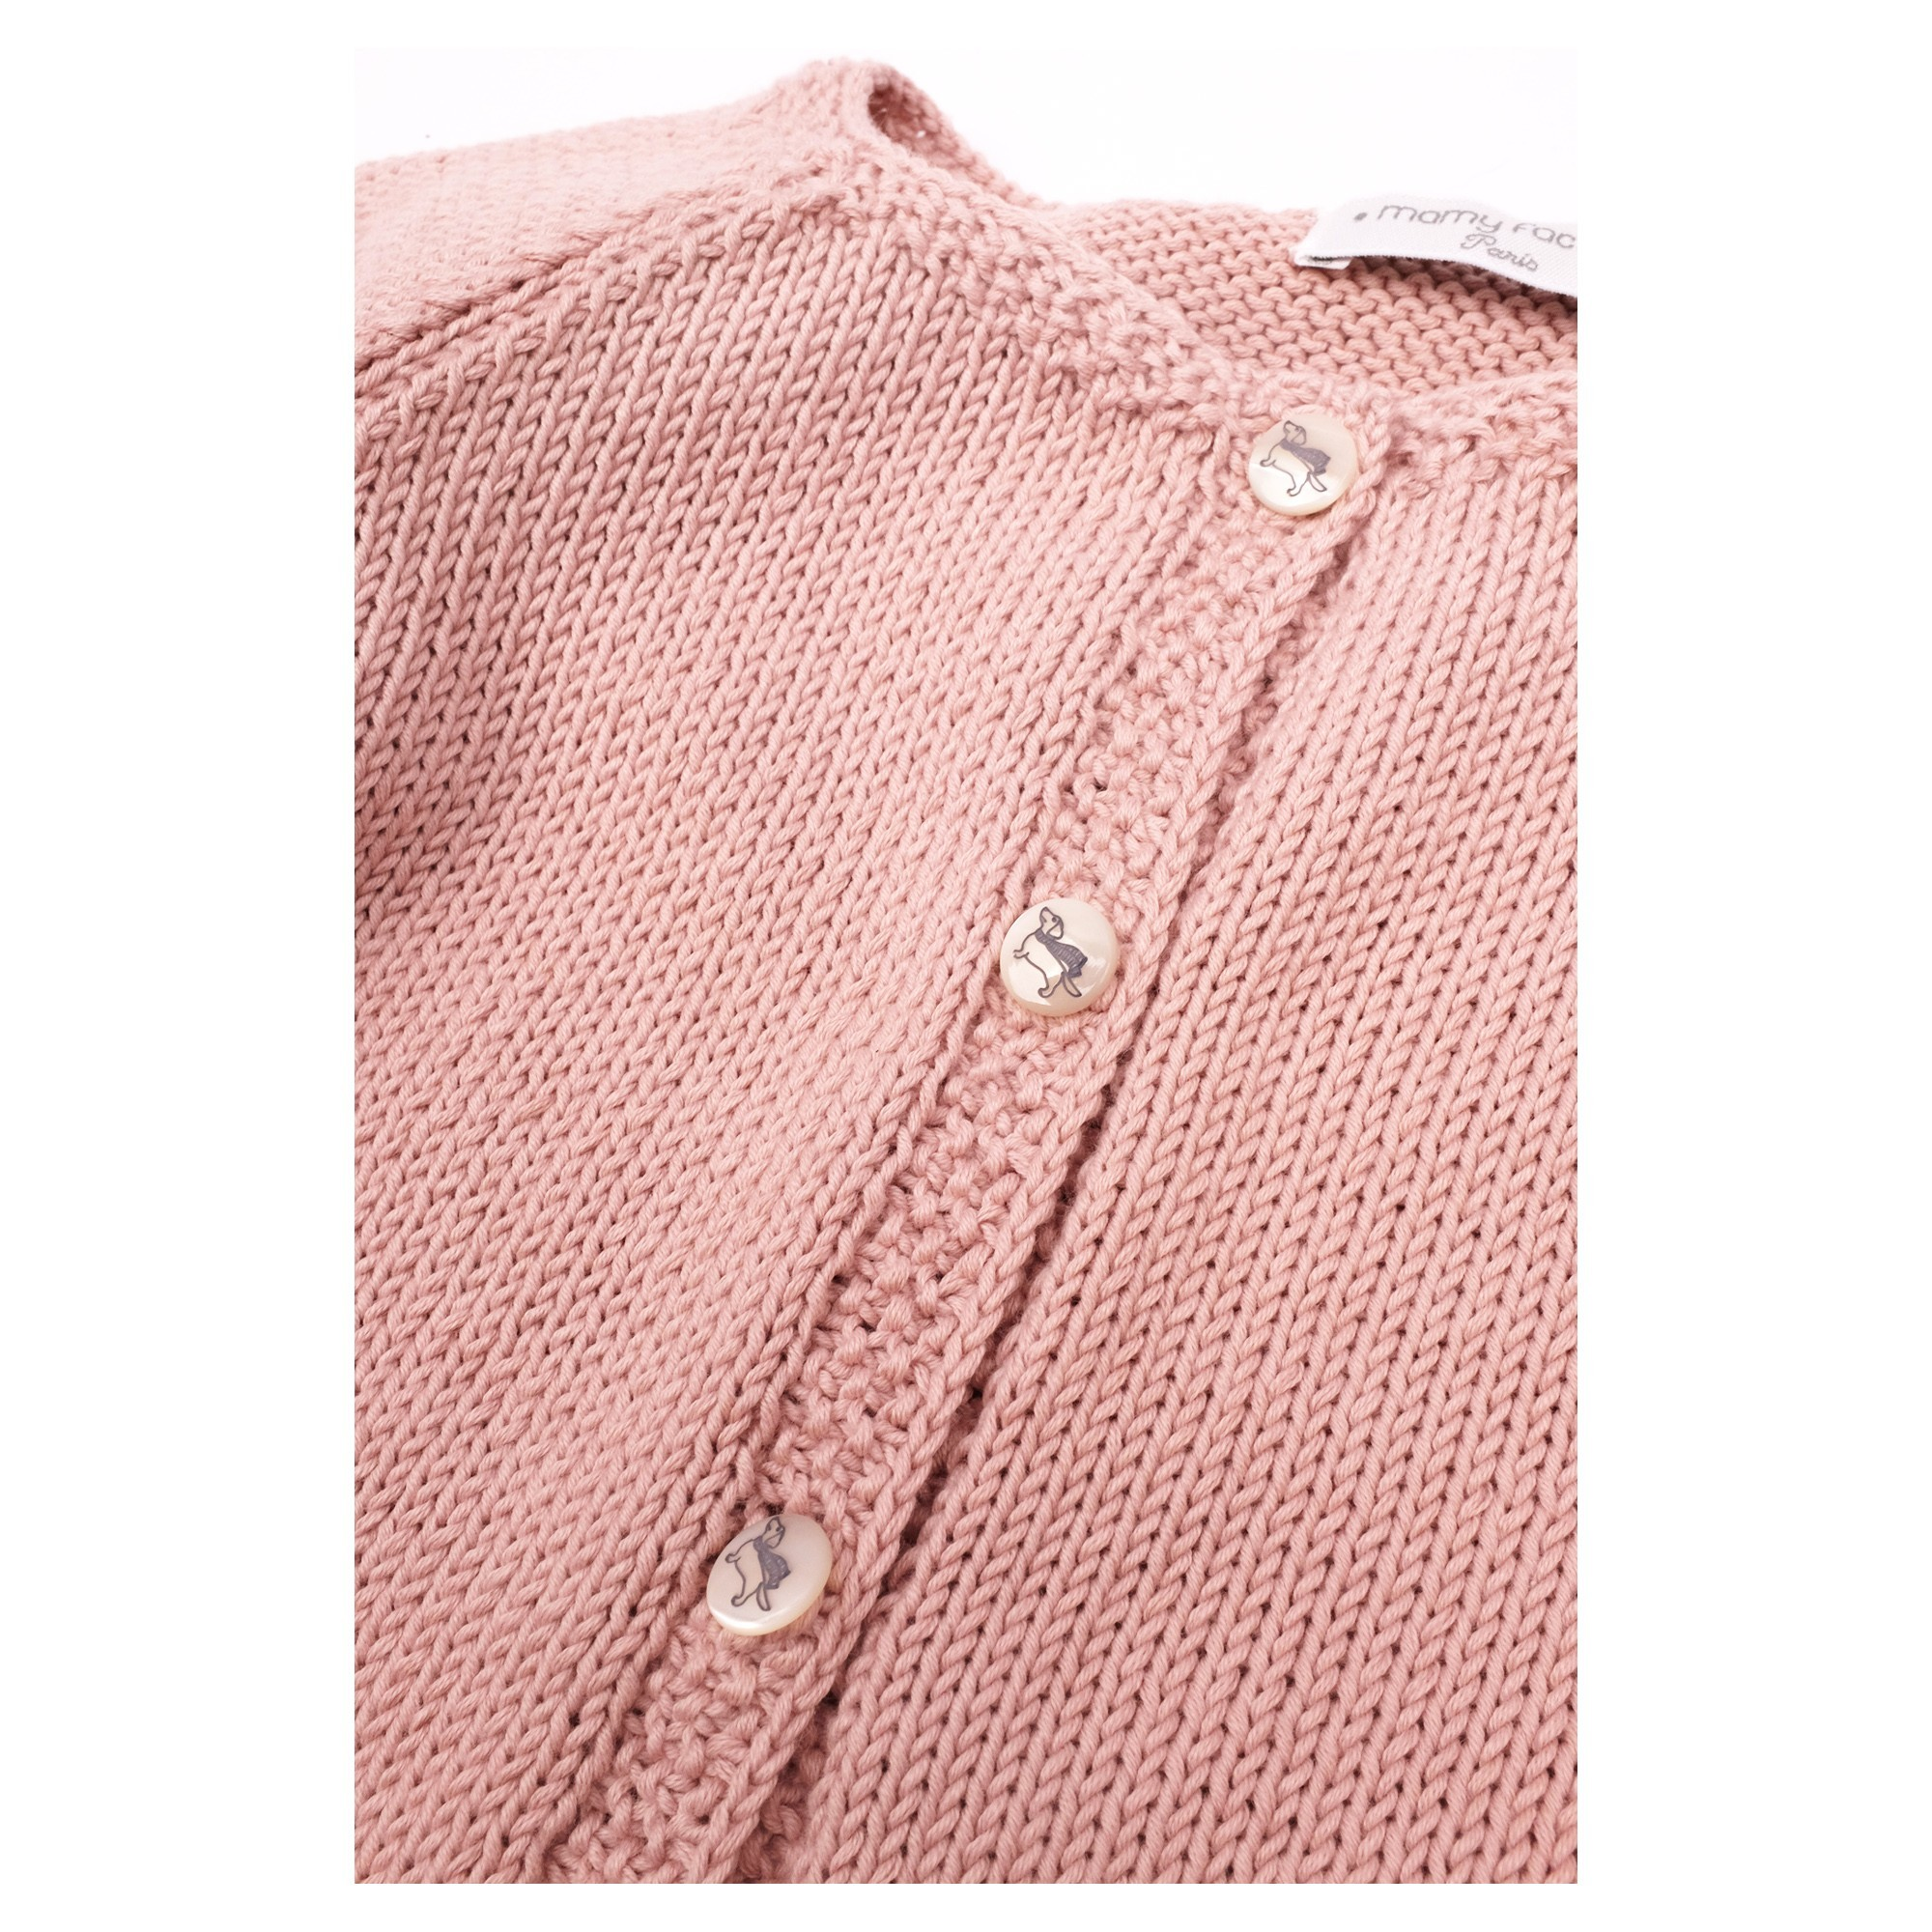 Marie-Louise Cardigan opaline pink cotton detail